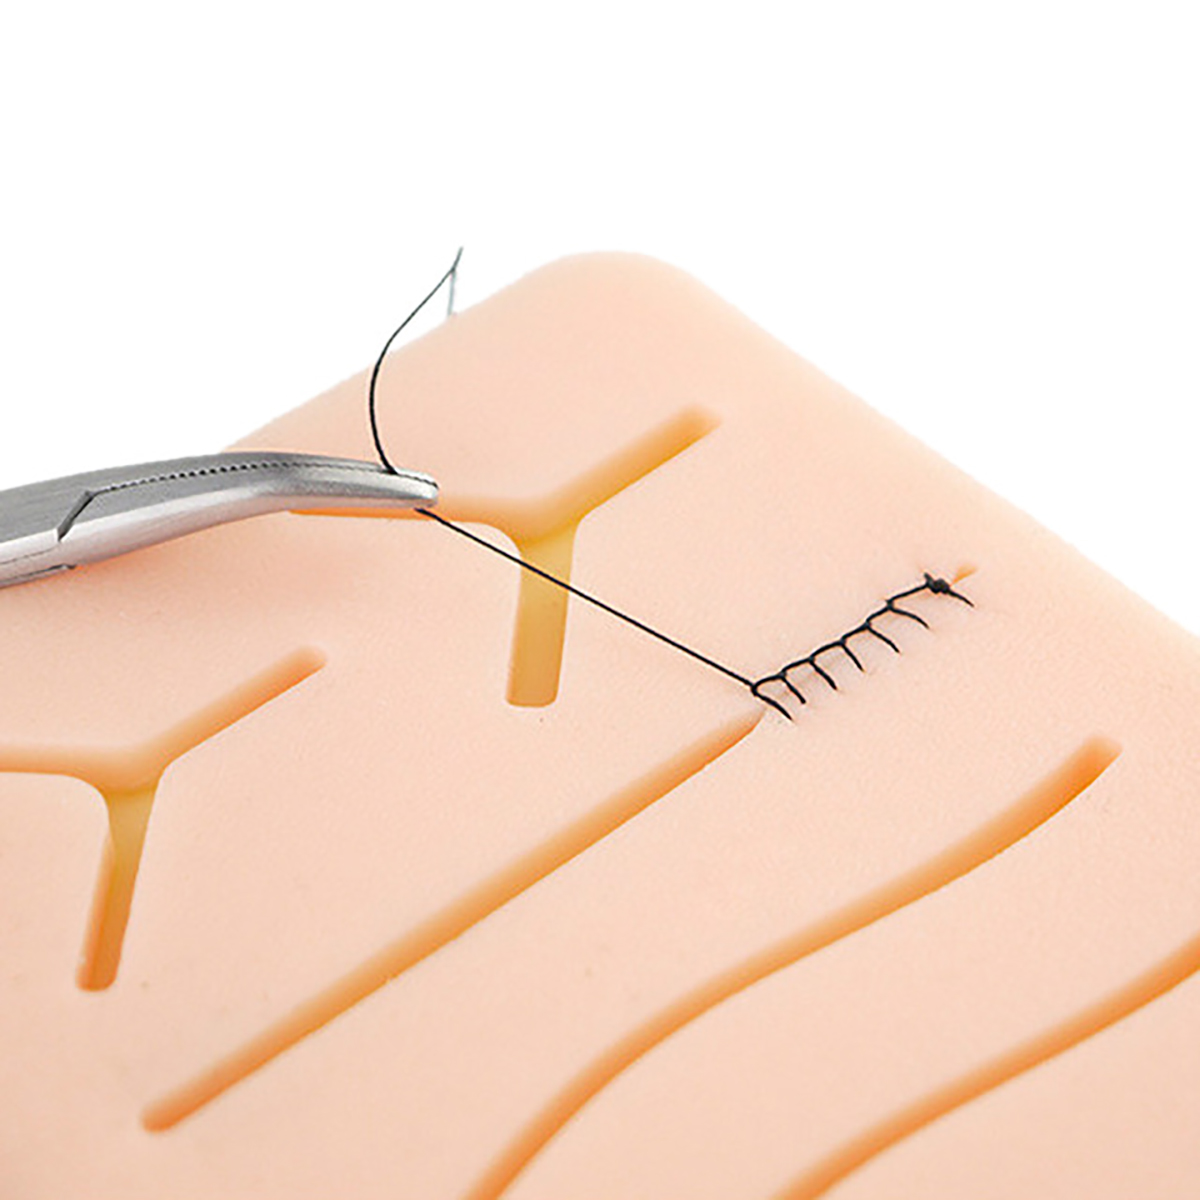 Surgical Simulated Skin Muscle Suture Practice Student Silicone Pad Training